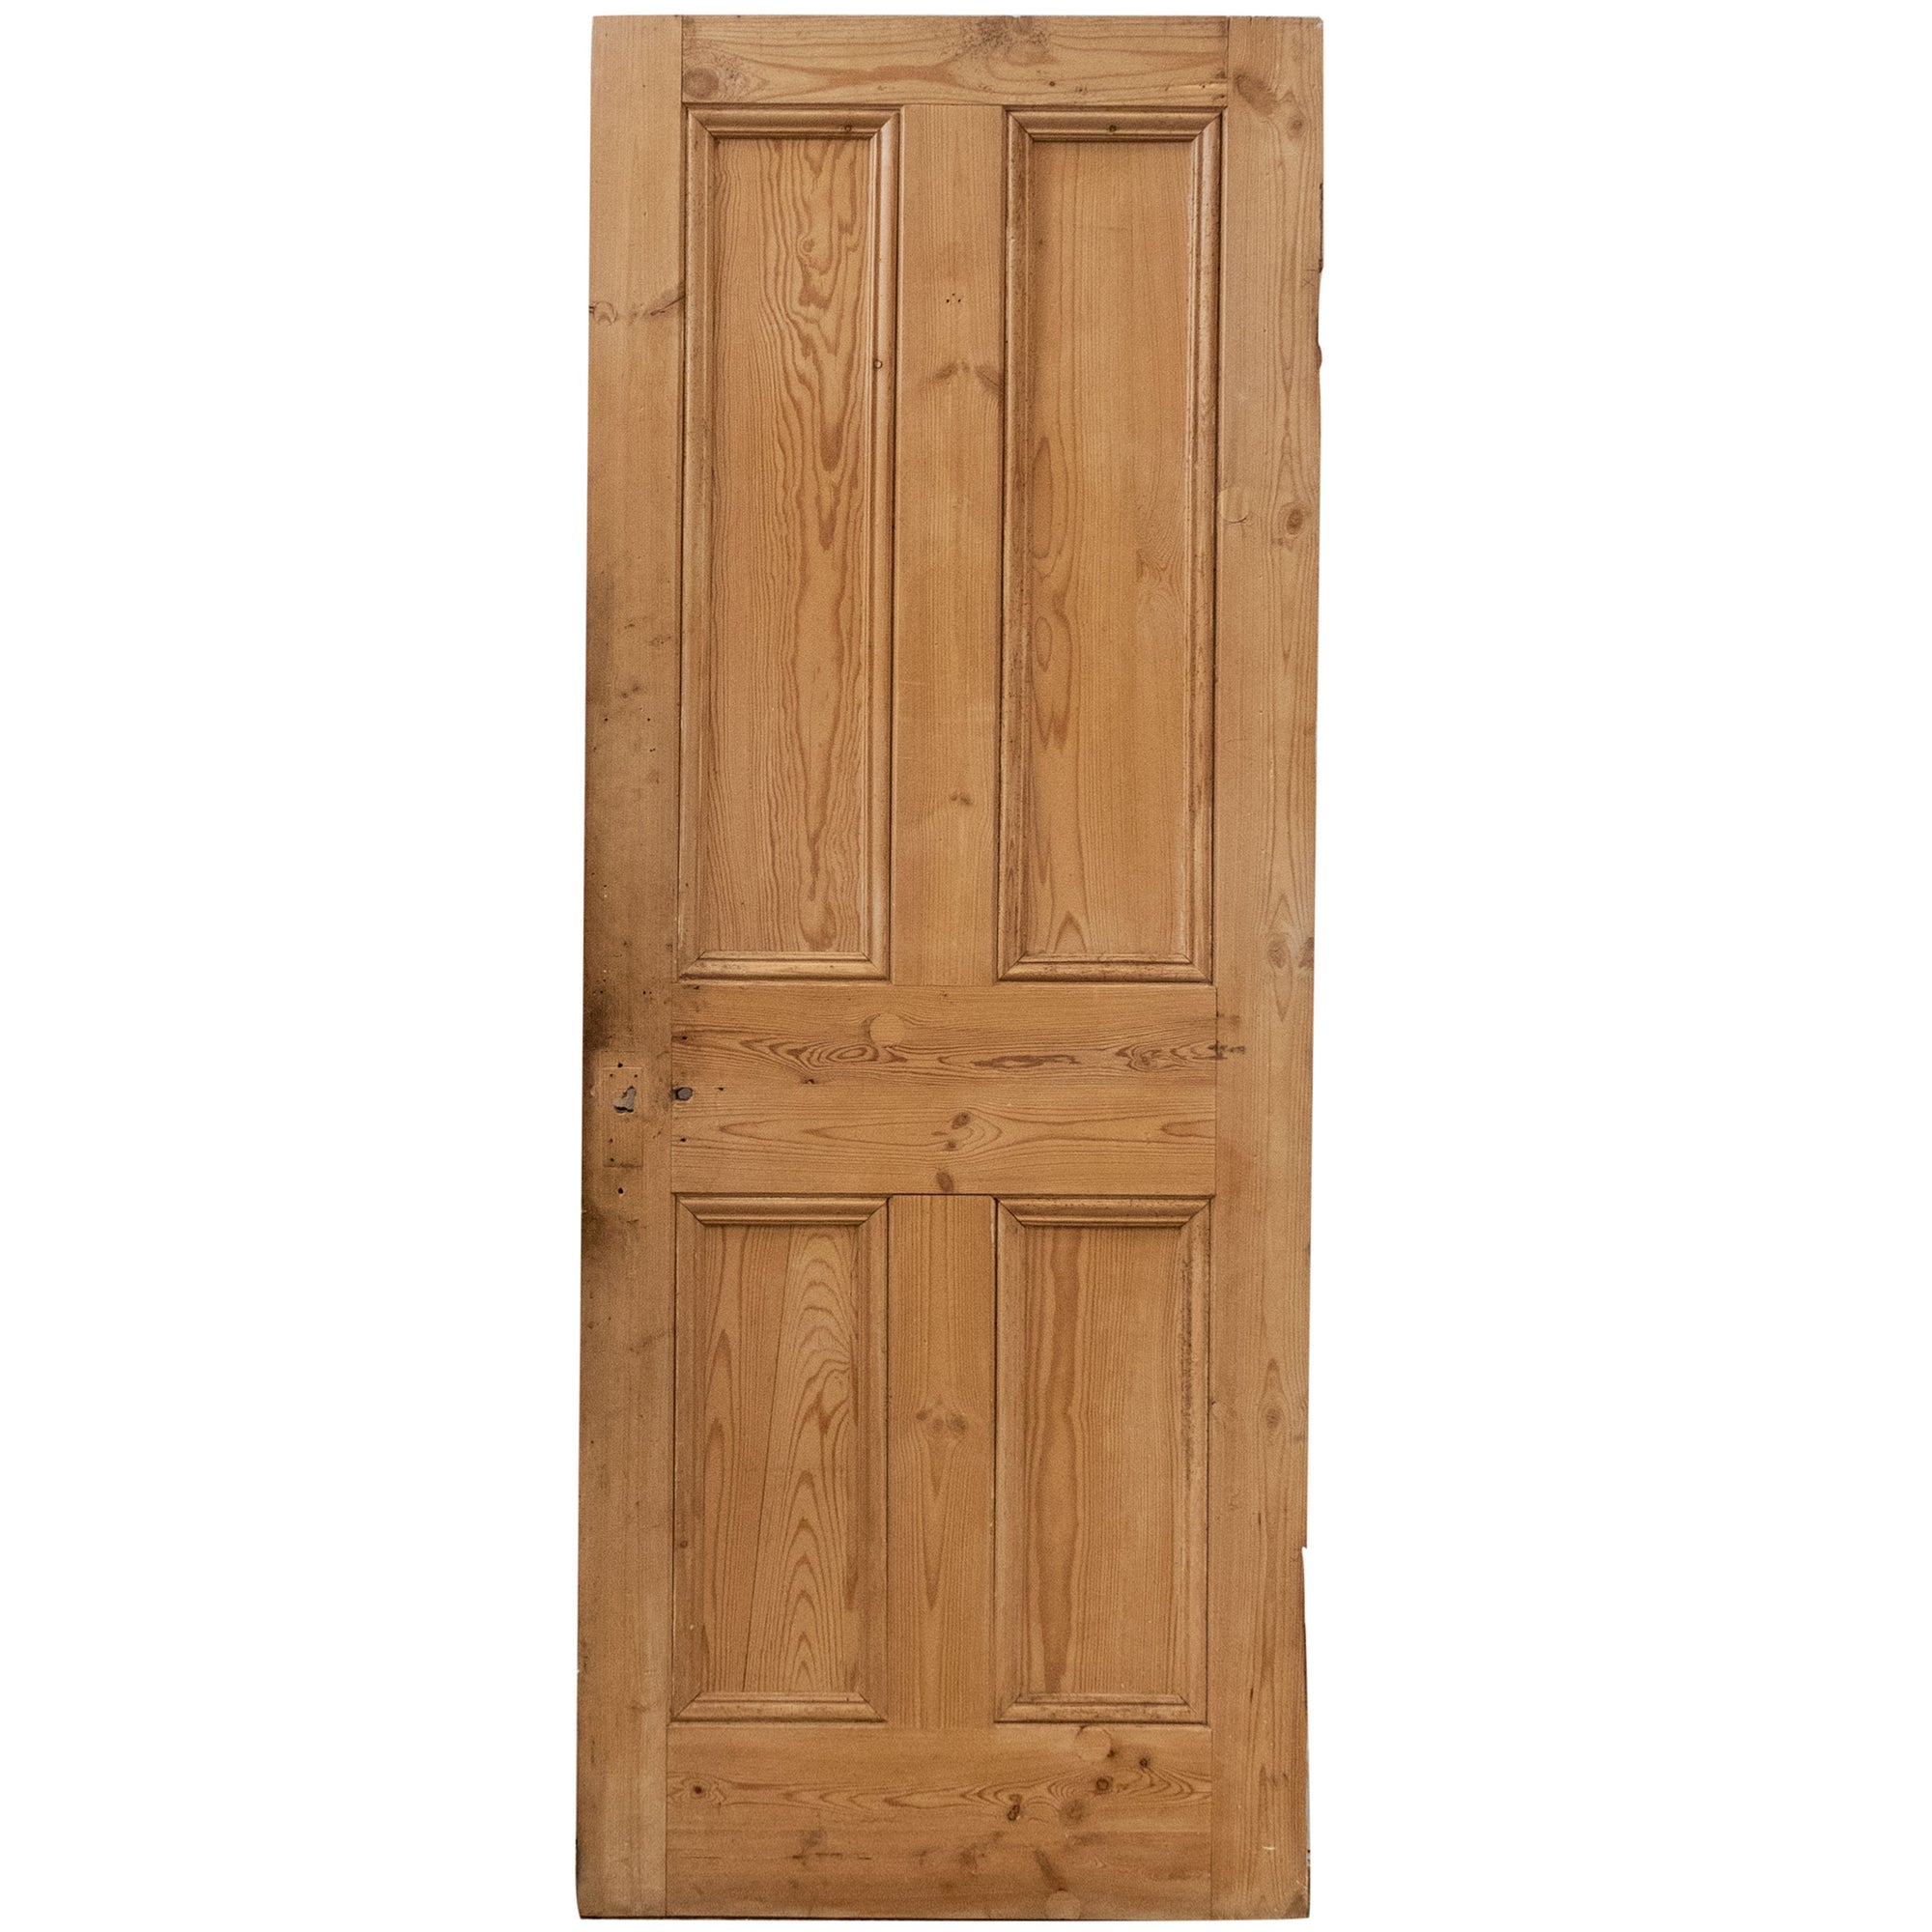 Victorian 4 Panel Door - 195cm x 75cm | The Architectural Forum